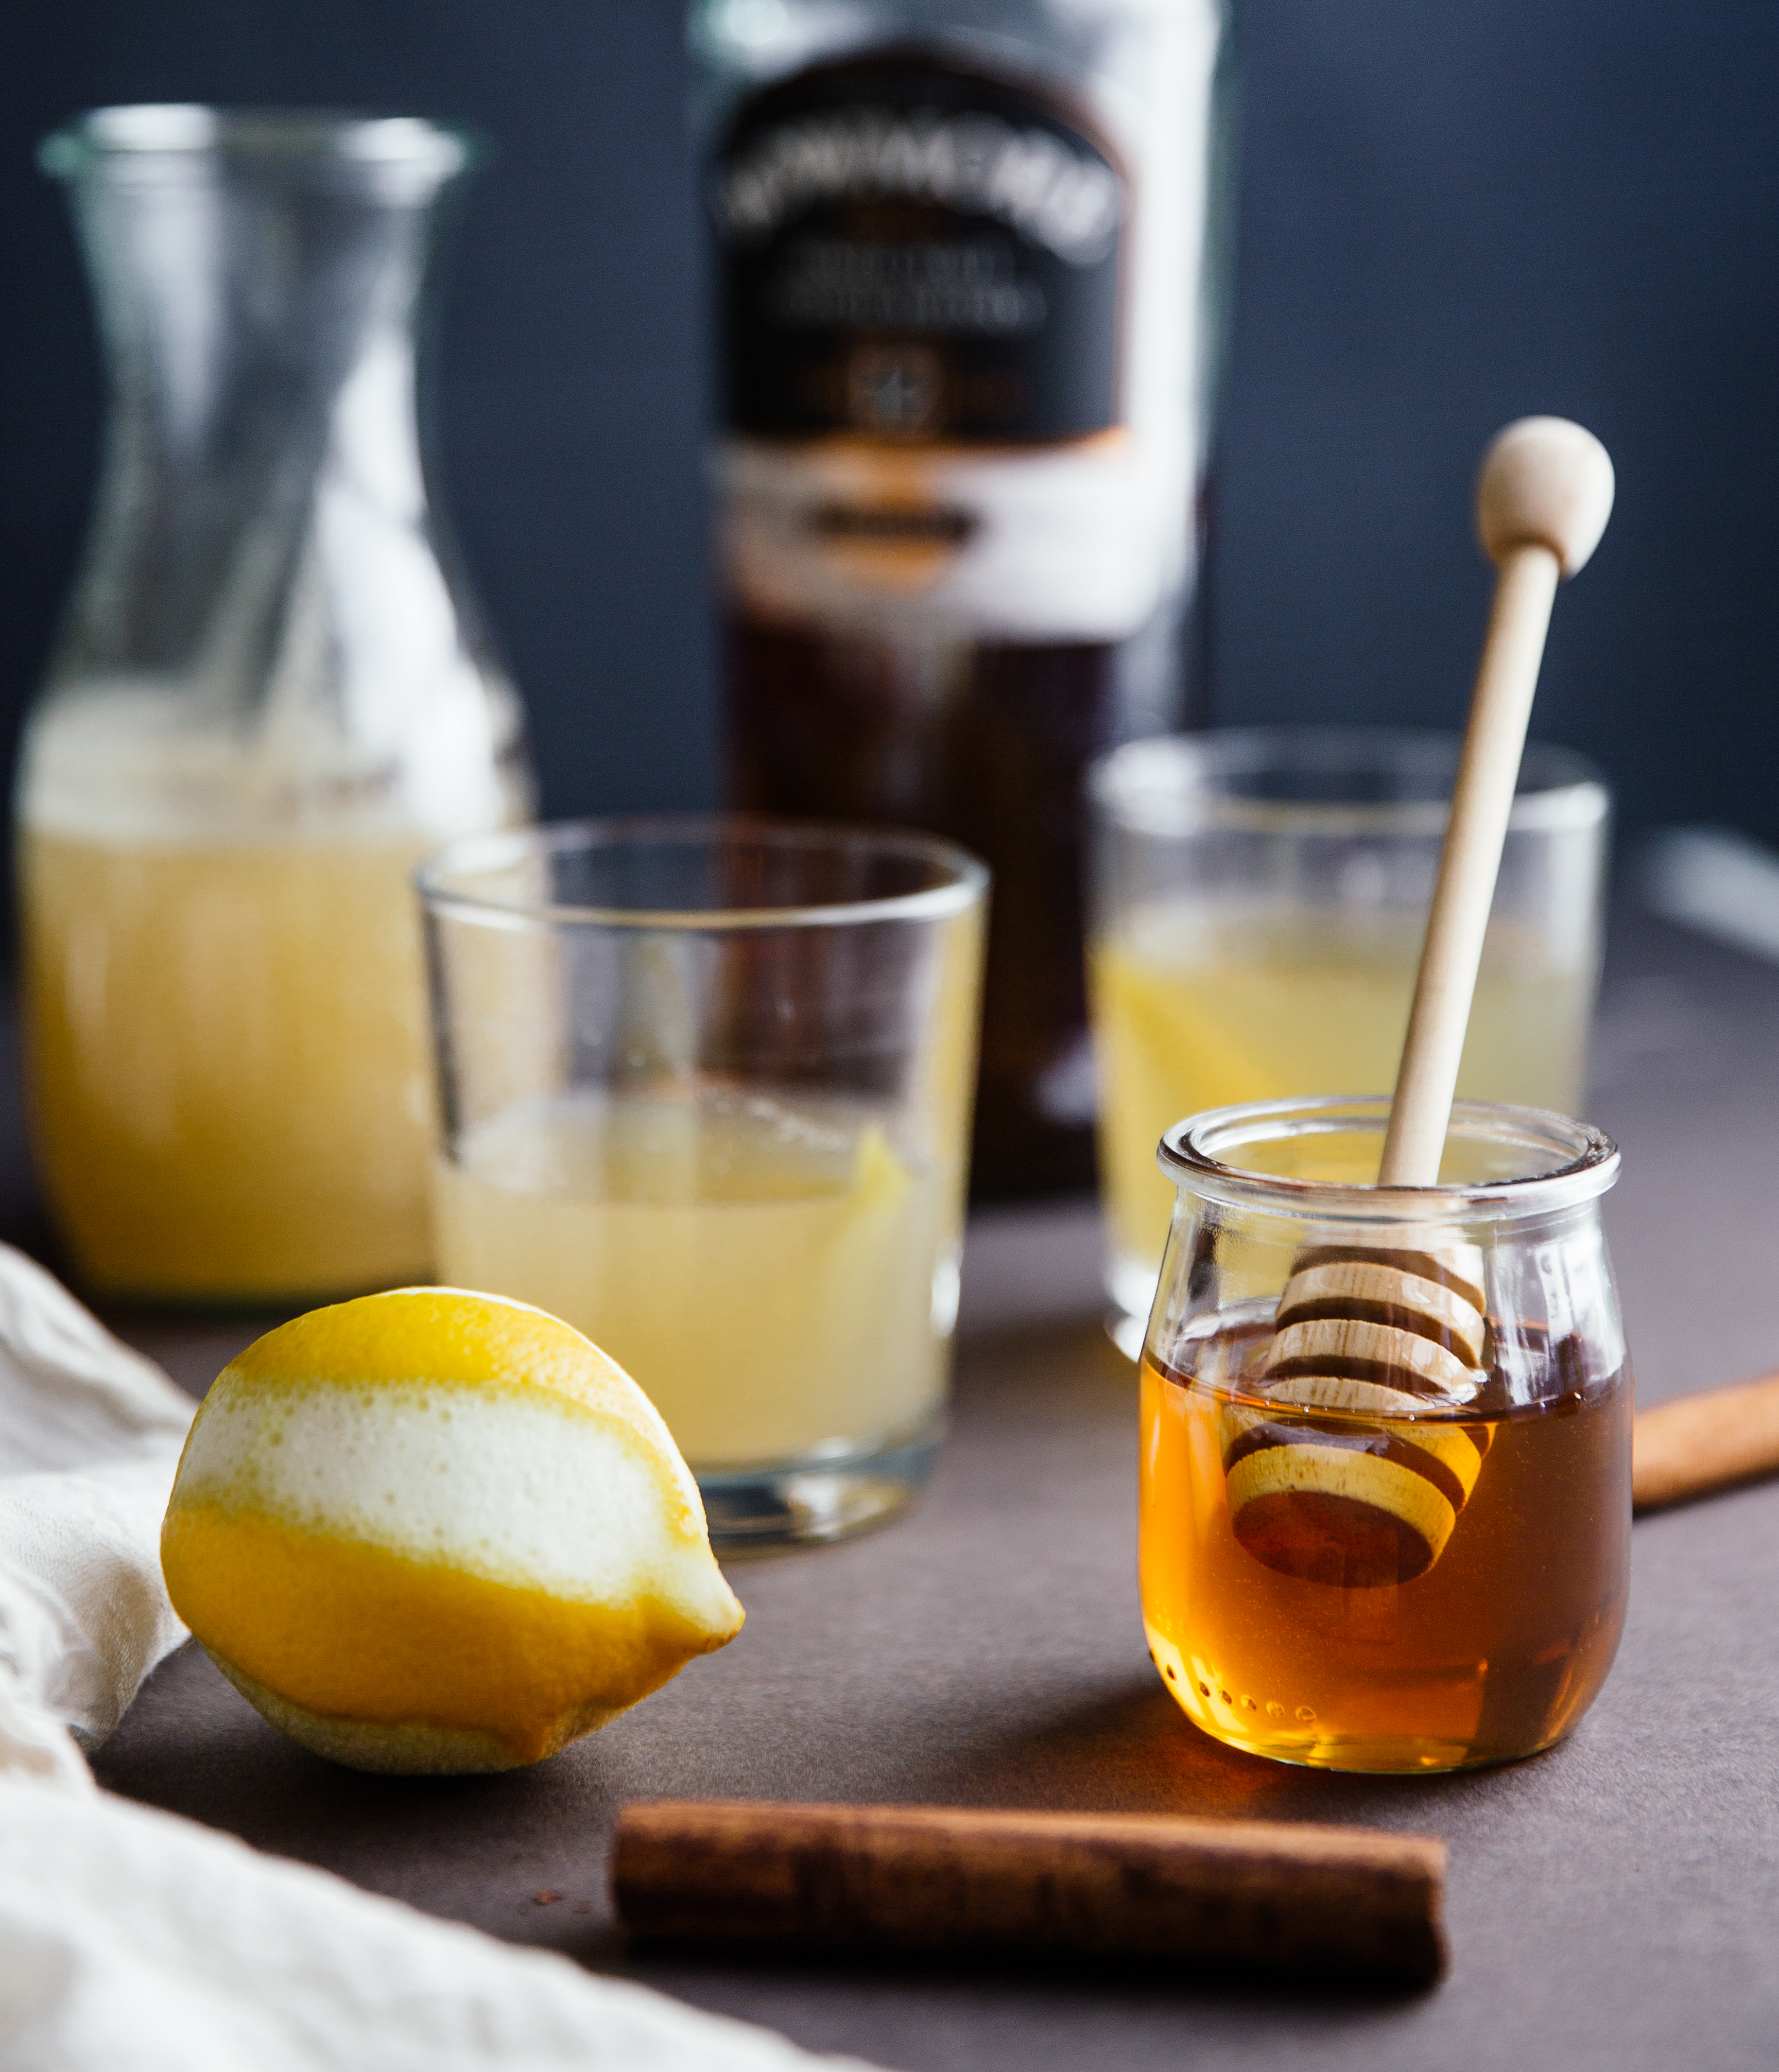 Spicy hot toddy